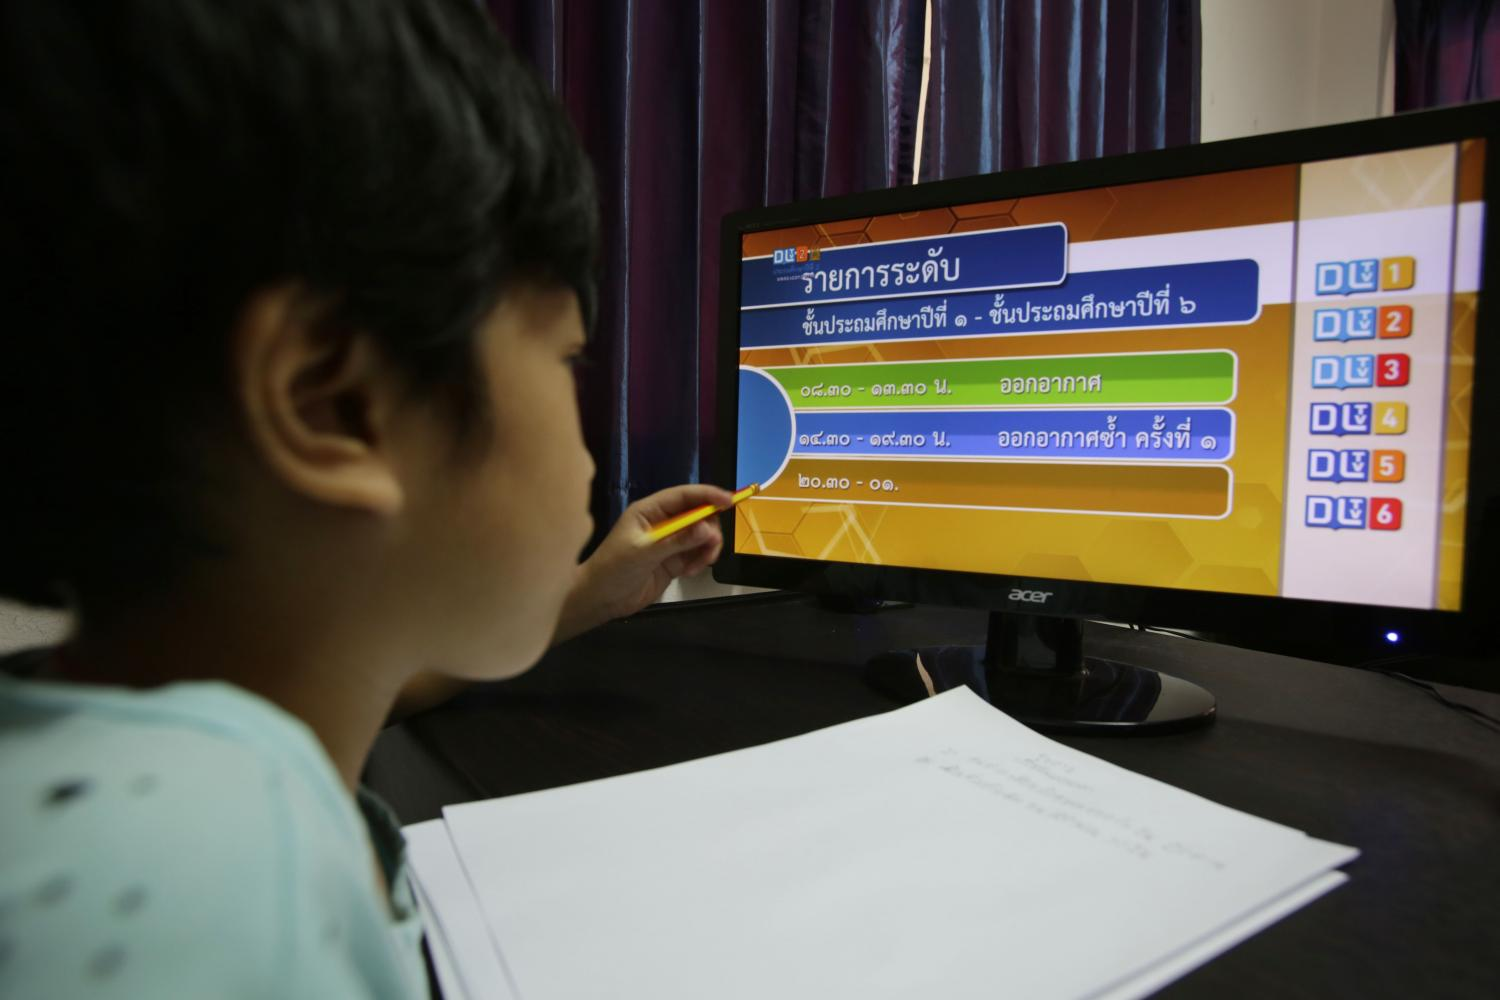 A young student takes part in an online learning trial which kicked off on May 18. The system is riddled with shortcomings, exposing the wide disparity between rich and poor kids. (Photo by Apichit Jinakul)